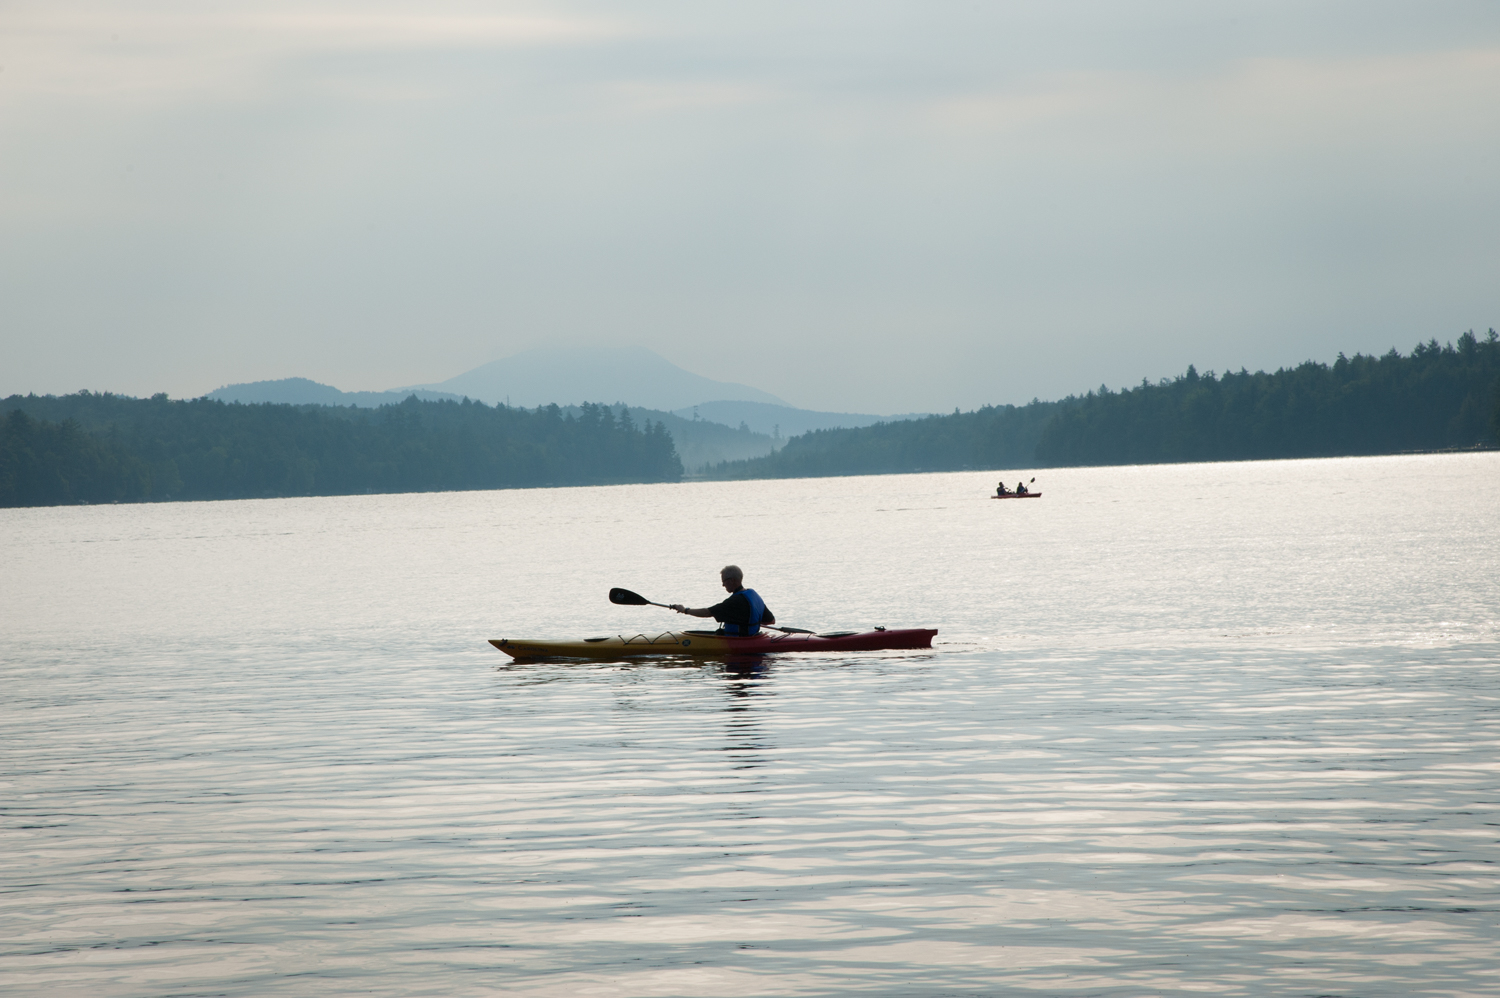 Kayaker on Raquette Lake with Blue Mountain in background